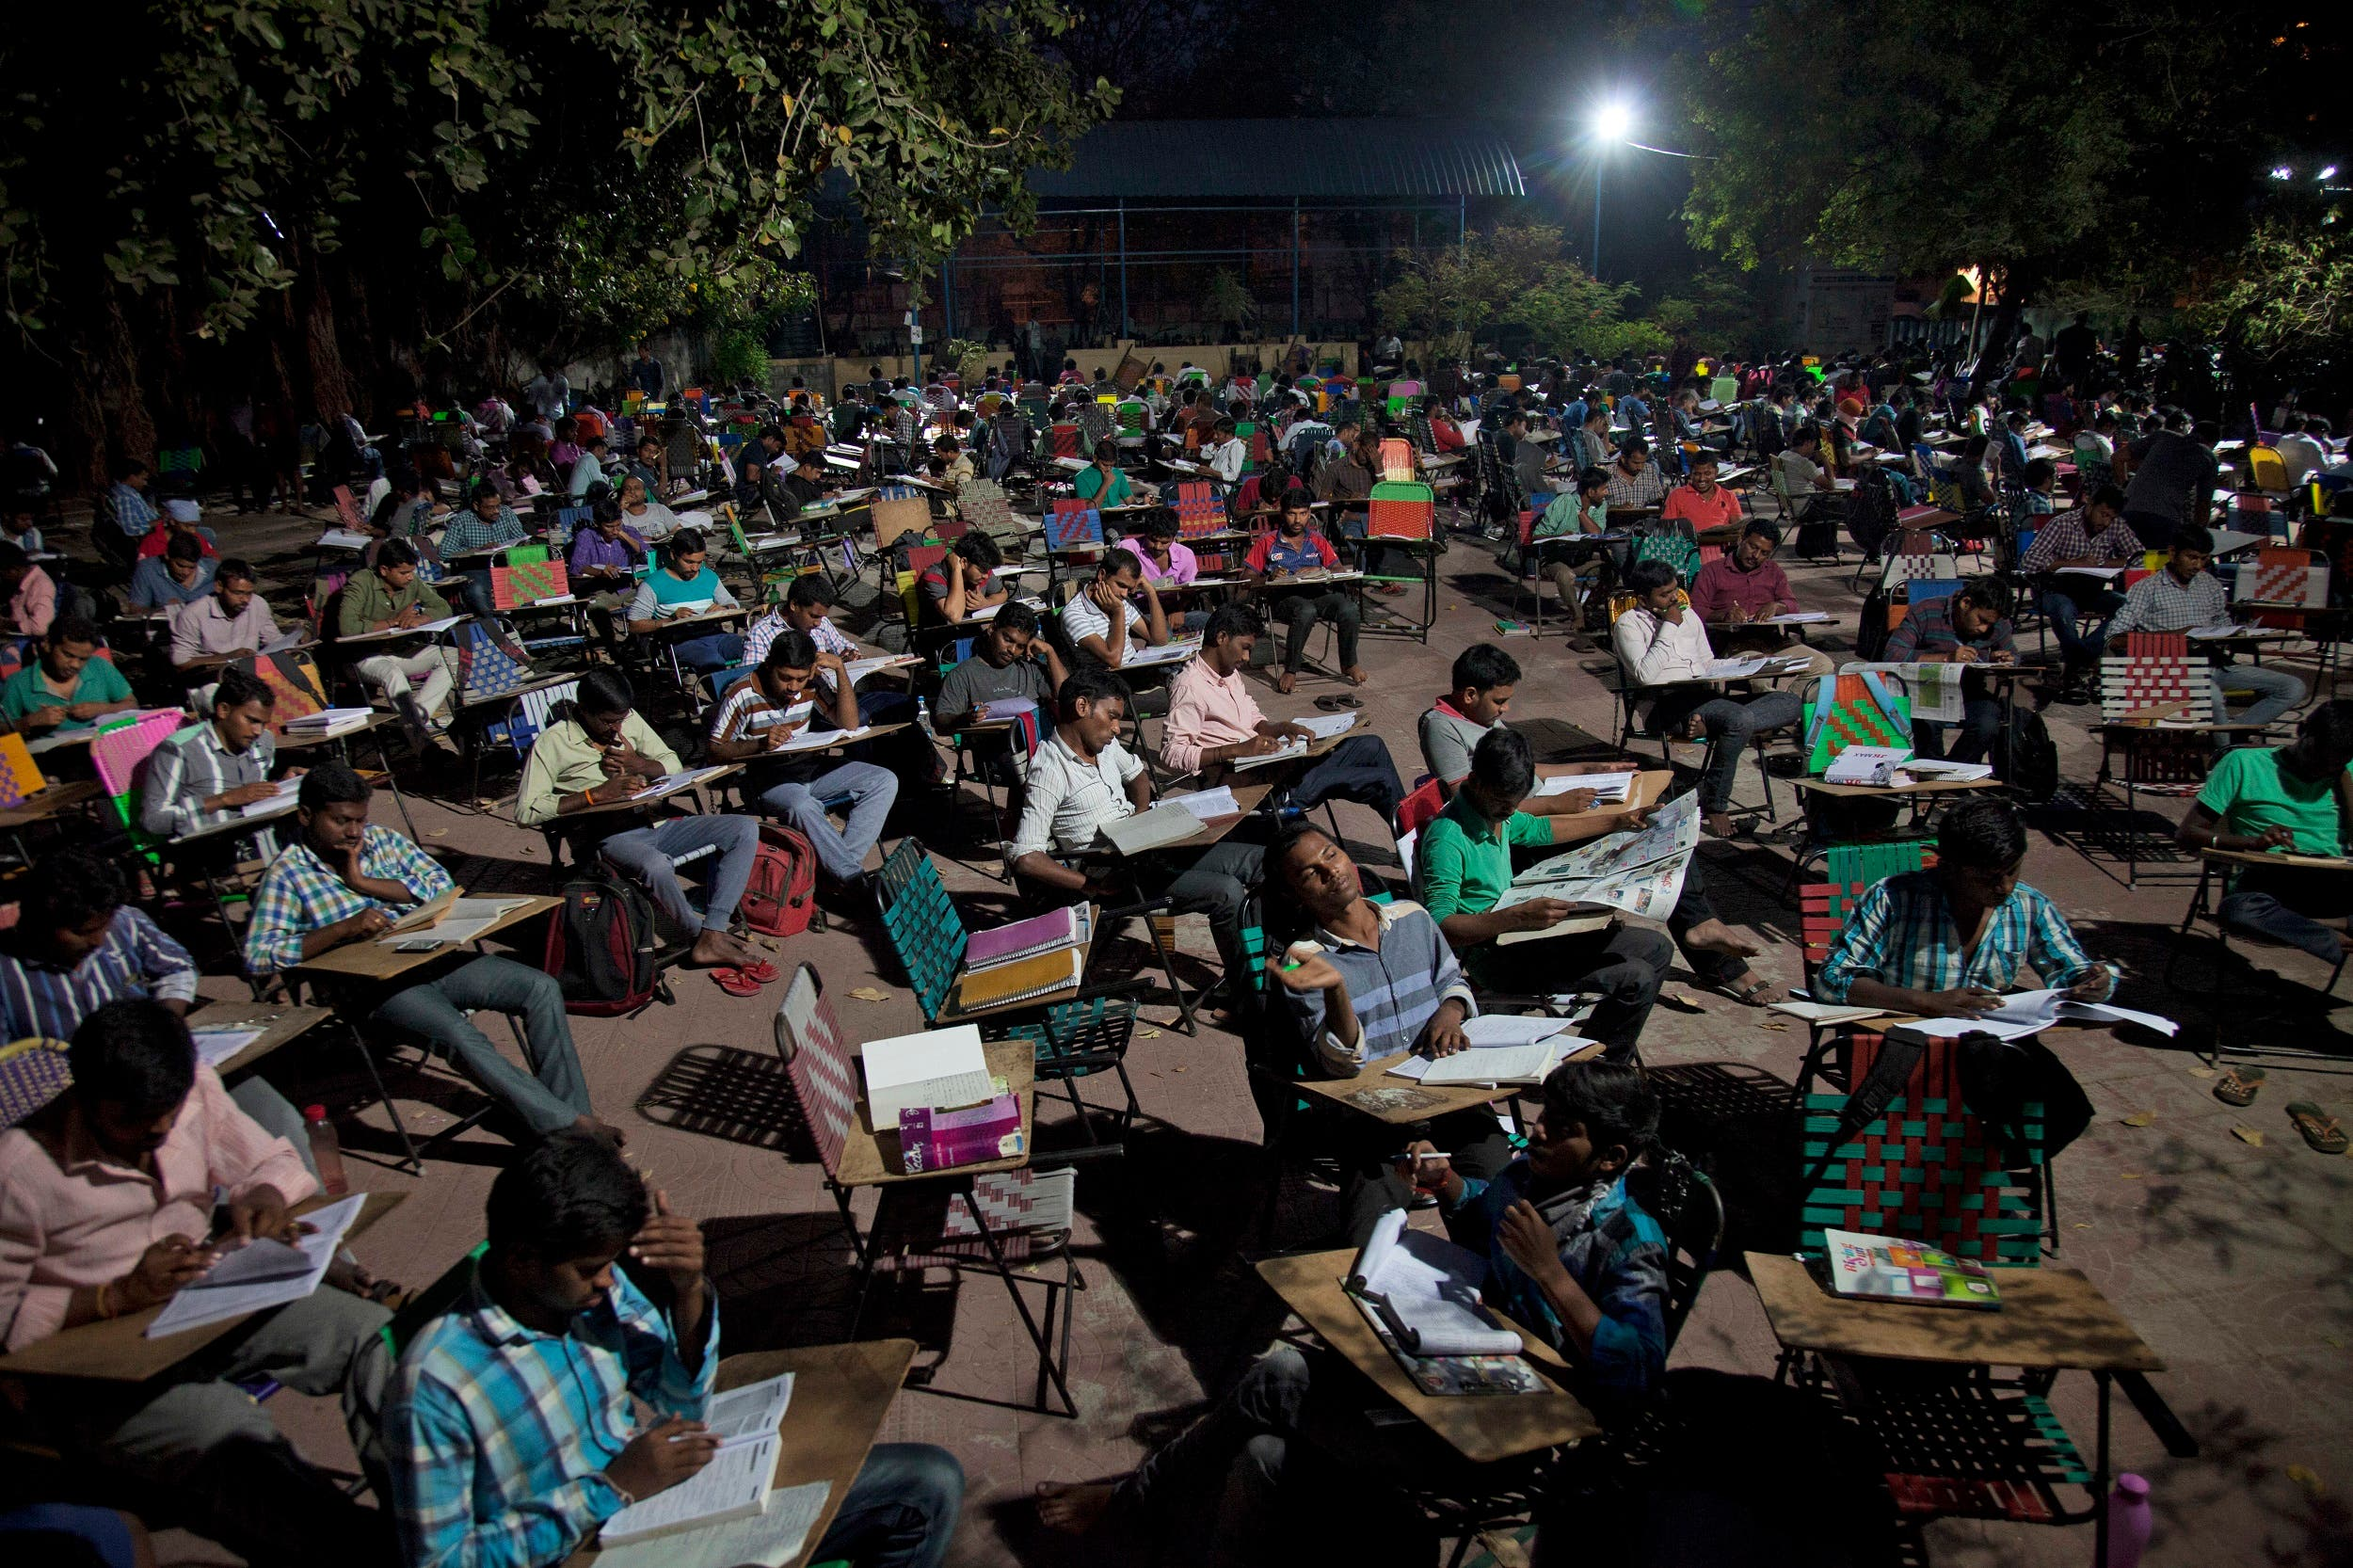 Hundreds of Indian college students and job-seekers study in an open ground in Hyderabad on Feb. 16, 2017. (AP)